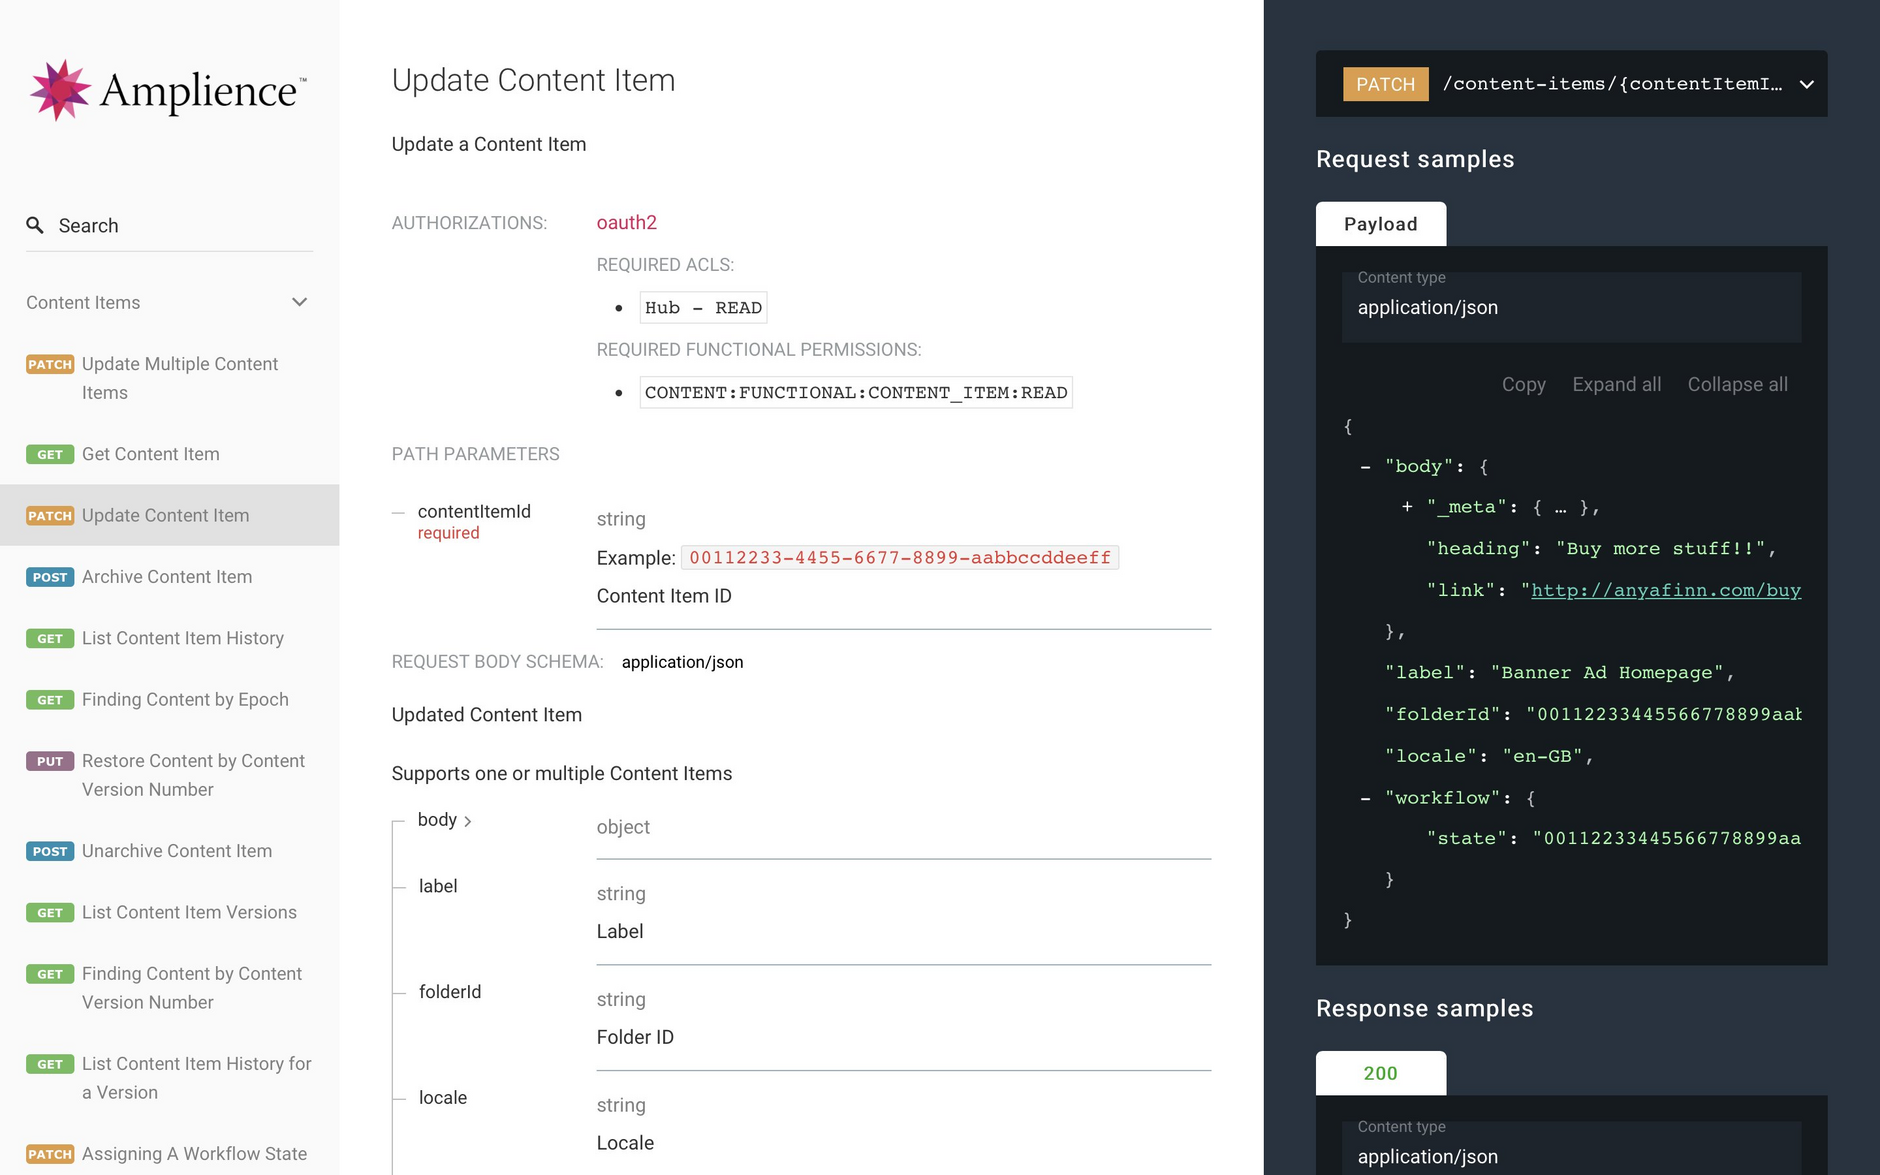 The new API docs feature improved navigation and clearer request and response sections for each API